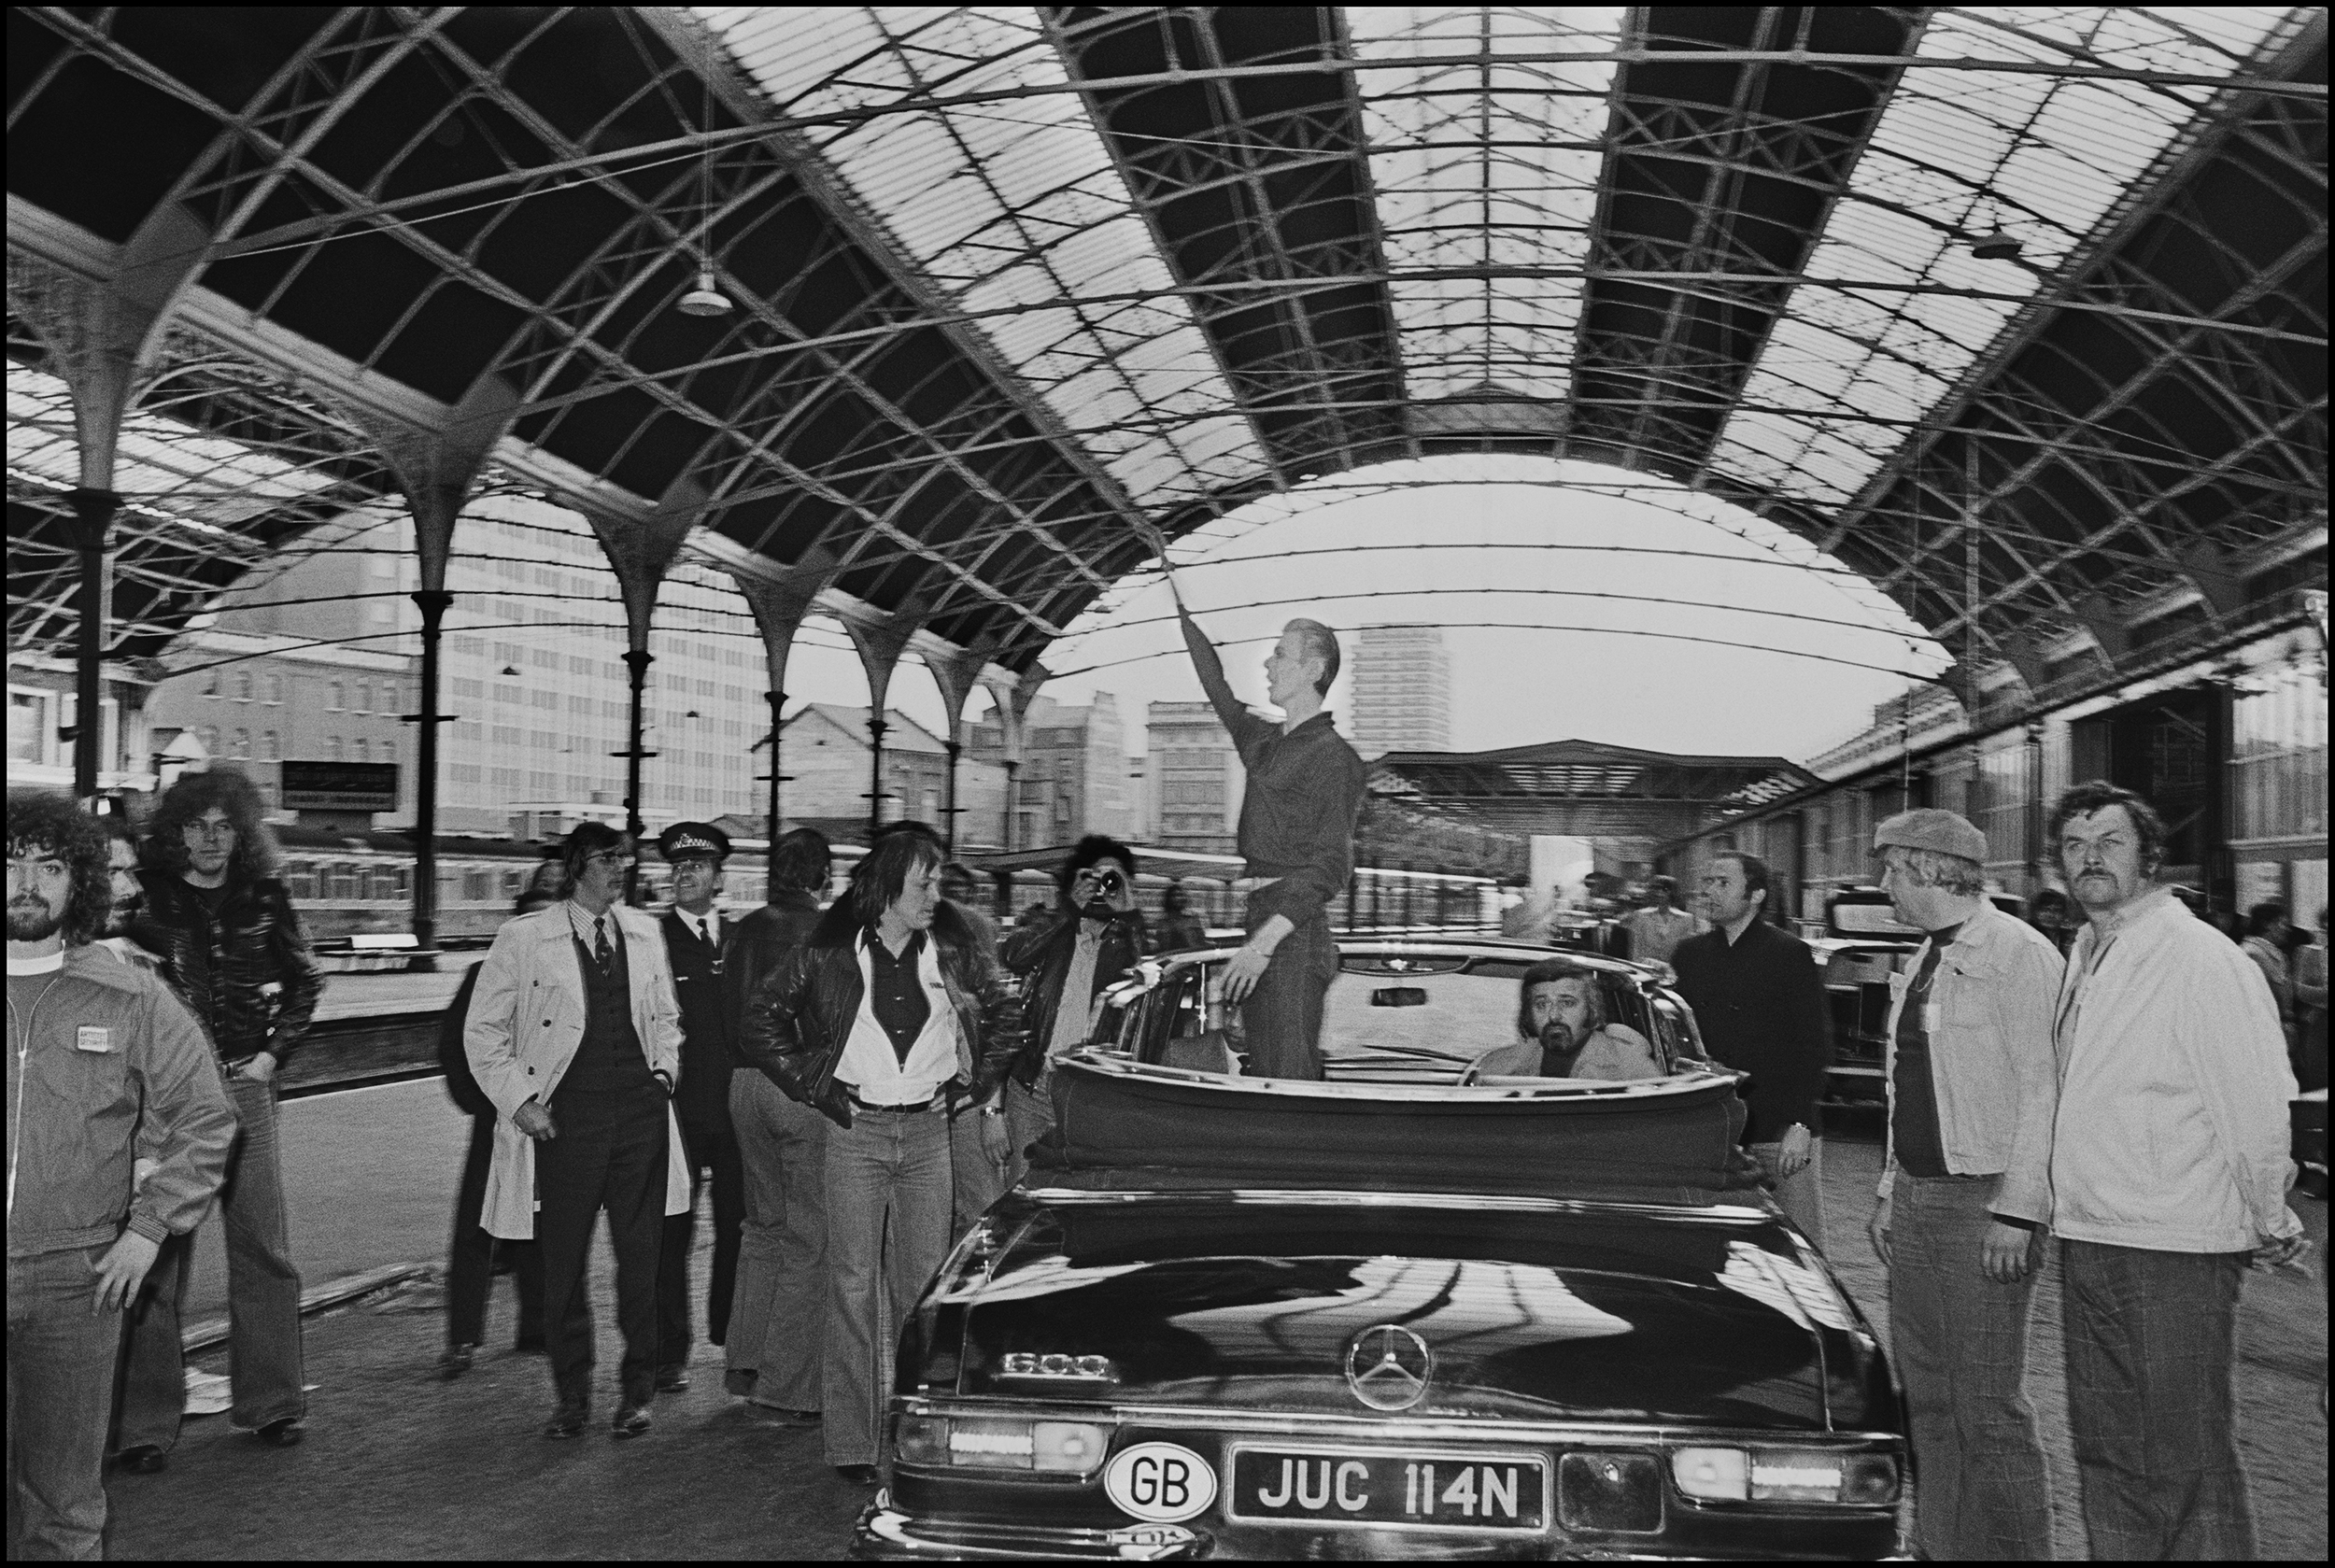 David Bowie - Victoria Station 1976  This photo became the centerpiece of what came to be known as 'The Victoria Station Incident'.  David Bowie hates flying, so when he returned to the UK for some concerts as the Thin White Duke in 1976 he arrived by a special train. It pulled into Victoria Station in the middle of a quiet Sunday afternoon, that's if you call a bunch of girls screaming at the top of their lungs quiet.  He walked a few yards from the train carriage to a waiting open topped BMW which then whisked him to another platform where the car reversed towards the hordes of screaming girls. It stopped near us photographers, David stood up in the back of the car and waved to the crowd, then, he drove of to an undisclosed location.  Unfortunately because of the gloomy late afternoon light at Victoria Station I used fill in flash on the four or five frames I managed to rattle off before he split.  When I showed the image to the NME the following day they decided to enhance his left arm by drawing a hand on the image, because of the flash it was partly missing. But when we saw the paper on Wednesday it looked very much like he was giving a Nazi salute.  The press picked up on this and put it together with some quotes on fascism he had made in Europe and lo and behold David was vilified as a Nazi. I feared it might harm our relationship but he shrugged it off saying it wasn't my fault, that I'd just caught a wrong moment and that he was indeed waving at the crowd. Nobody believed him of course and the Victoria Station Incident became part of a Bowie folklore.